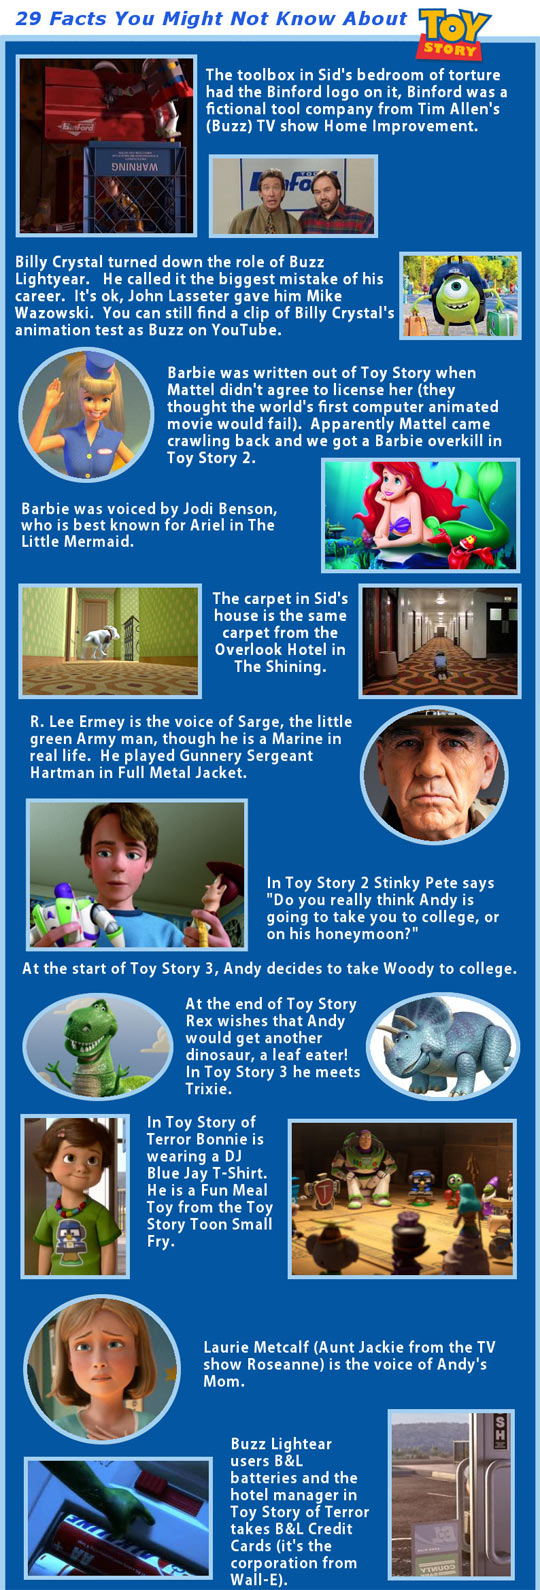 cool-facts-Toy-Story-Billy-Crystal